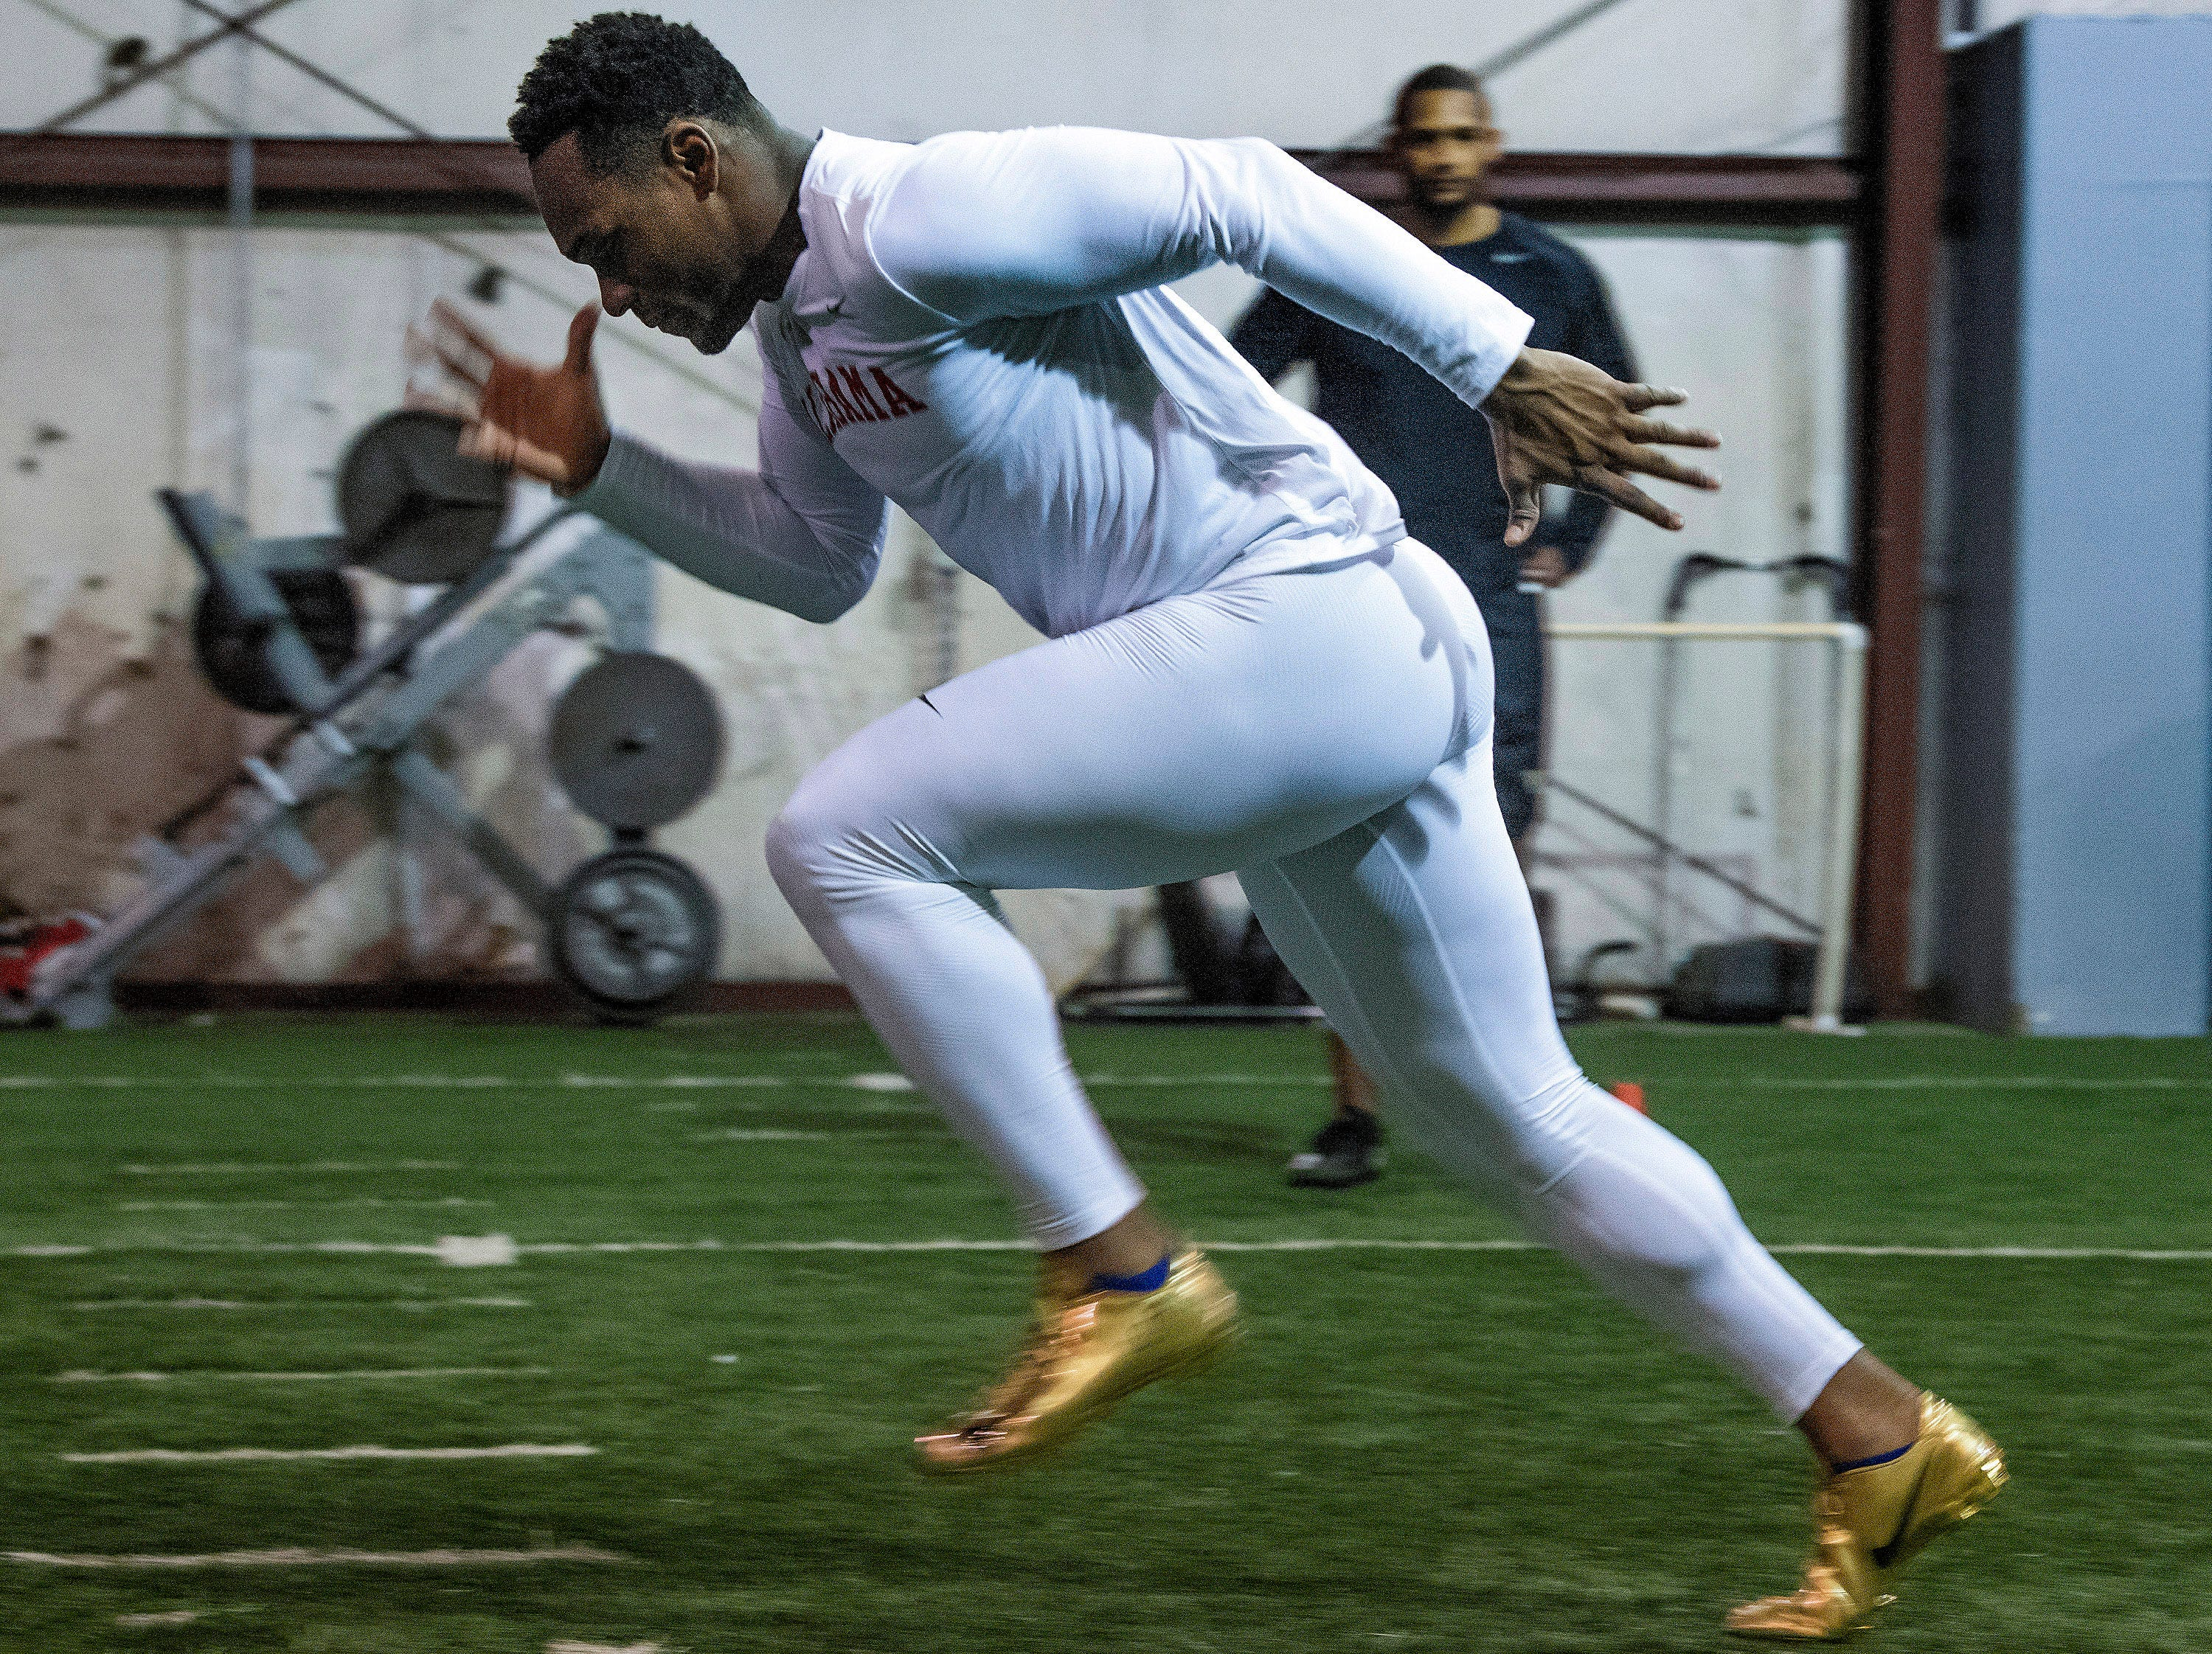 Mack Wilson runs drills as he trains for the NFL Combine at MADhouse gym in Montgomery, Ala., on Saturday February 9, 2019.